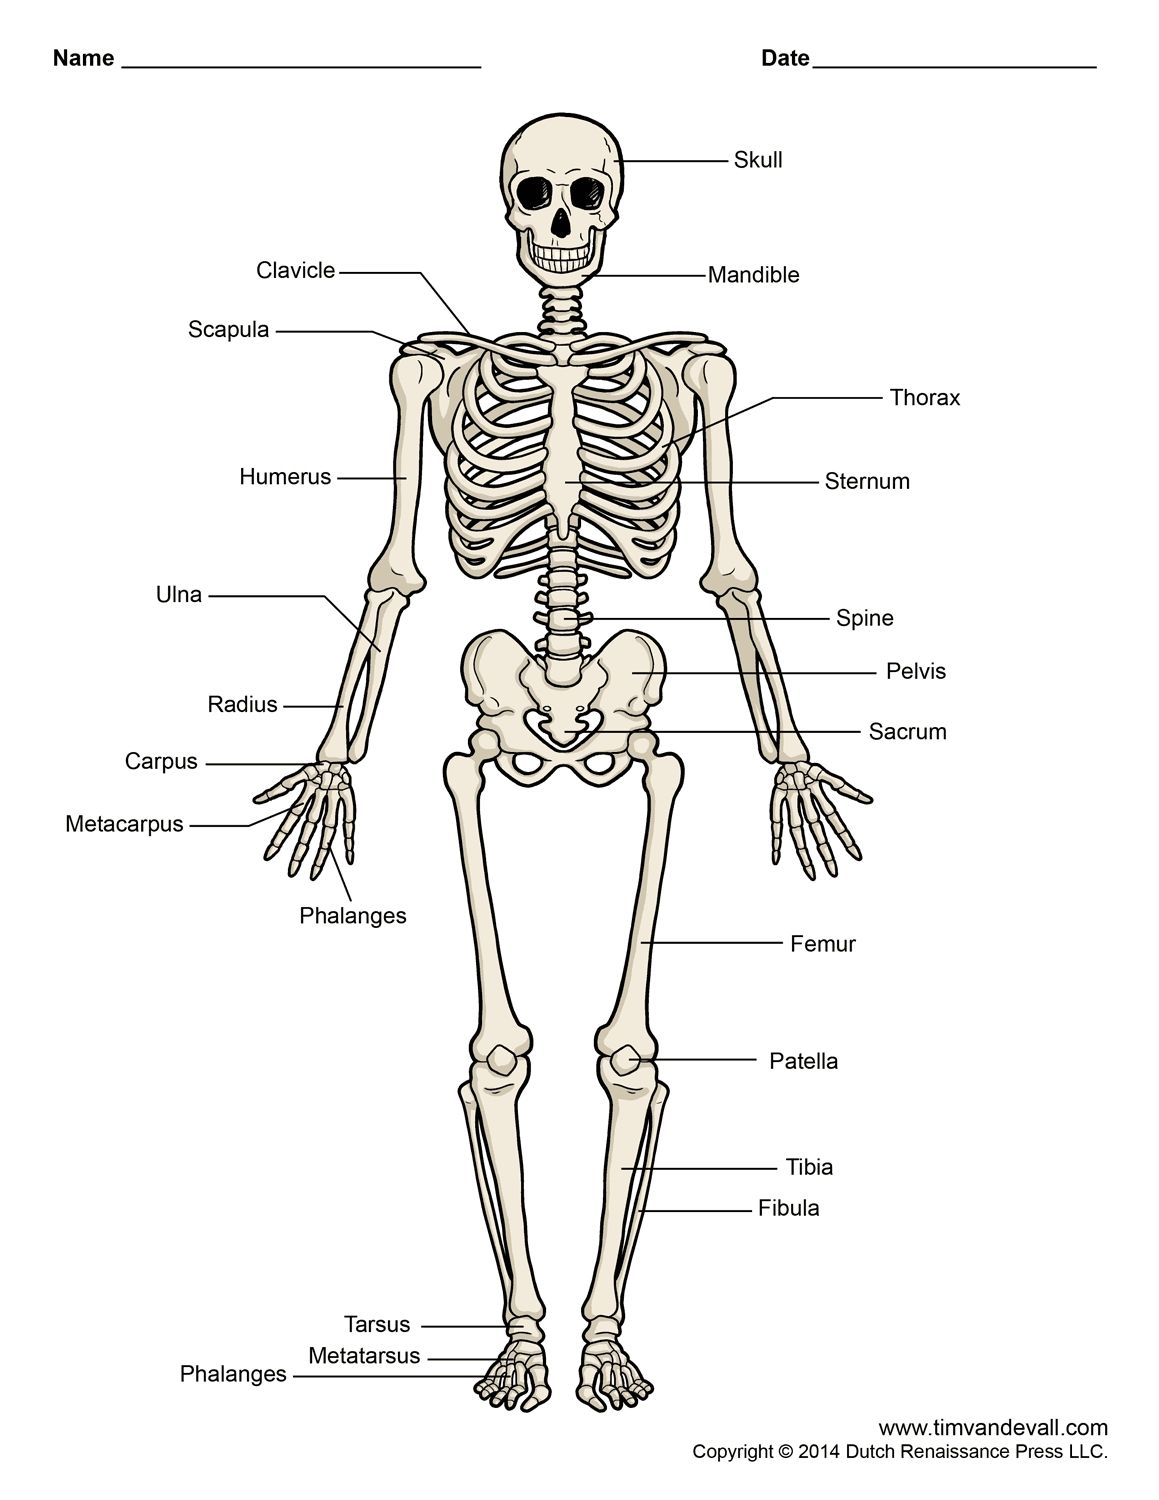 hight resolution of diagram of human skeleton labeled printable human skeleton diagram rh pinterest com unlabeled human skeleton diagram back printable human skeleton diagram